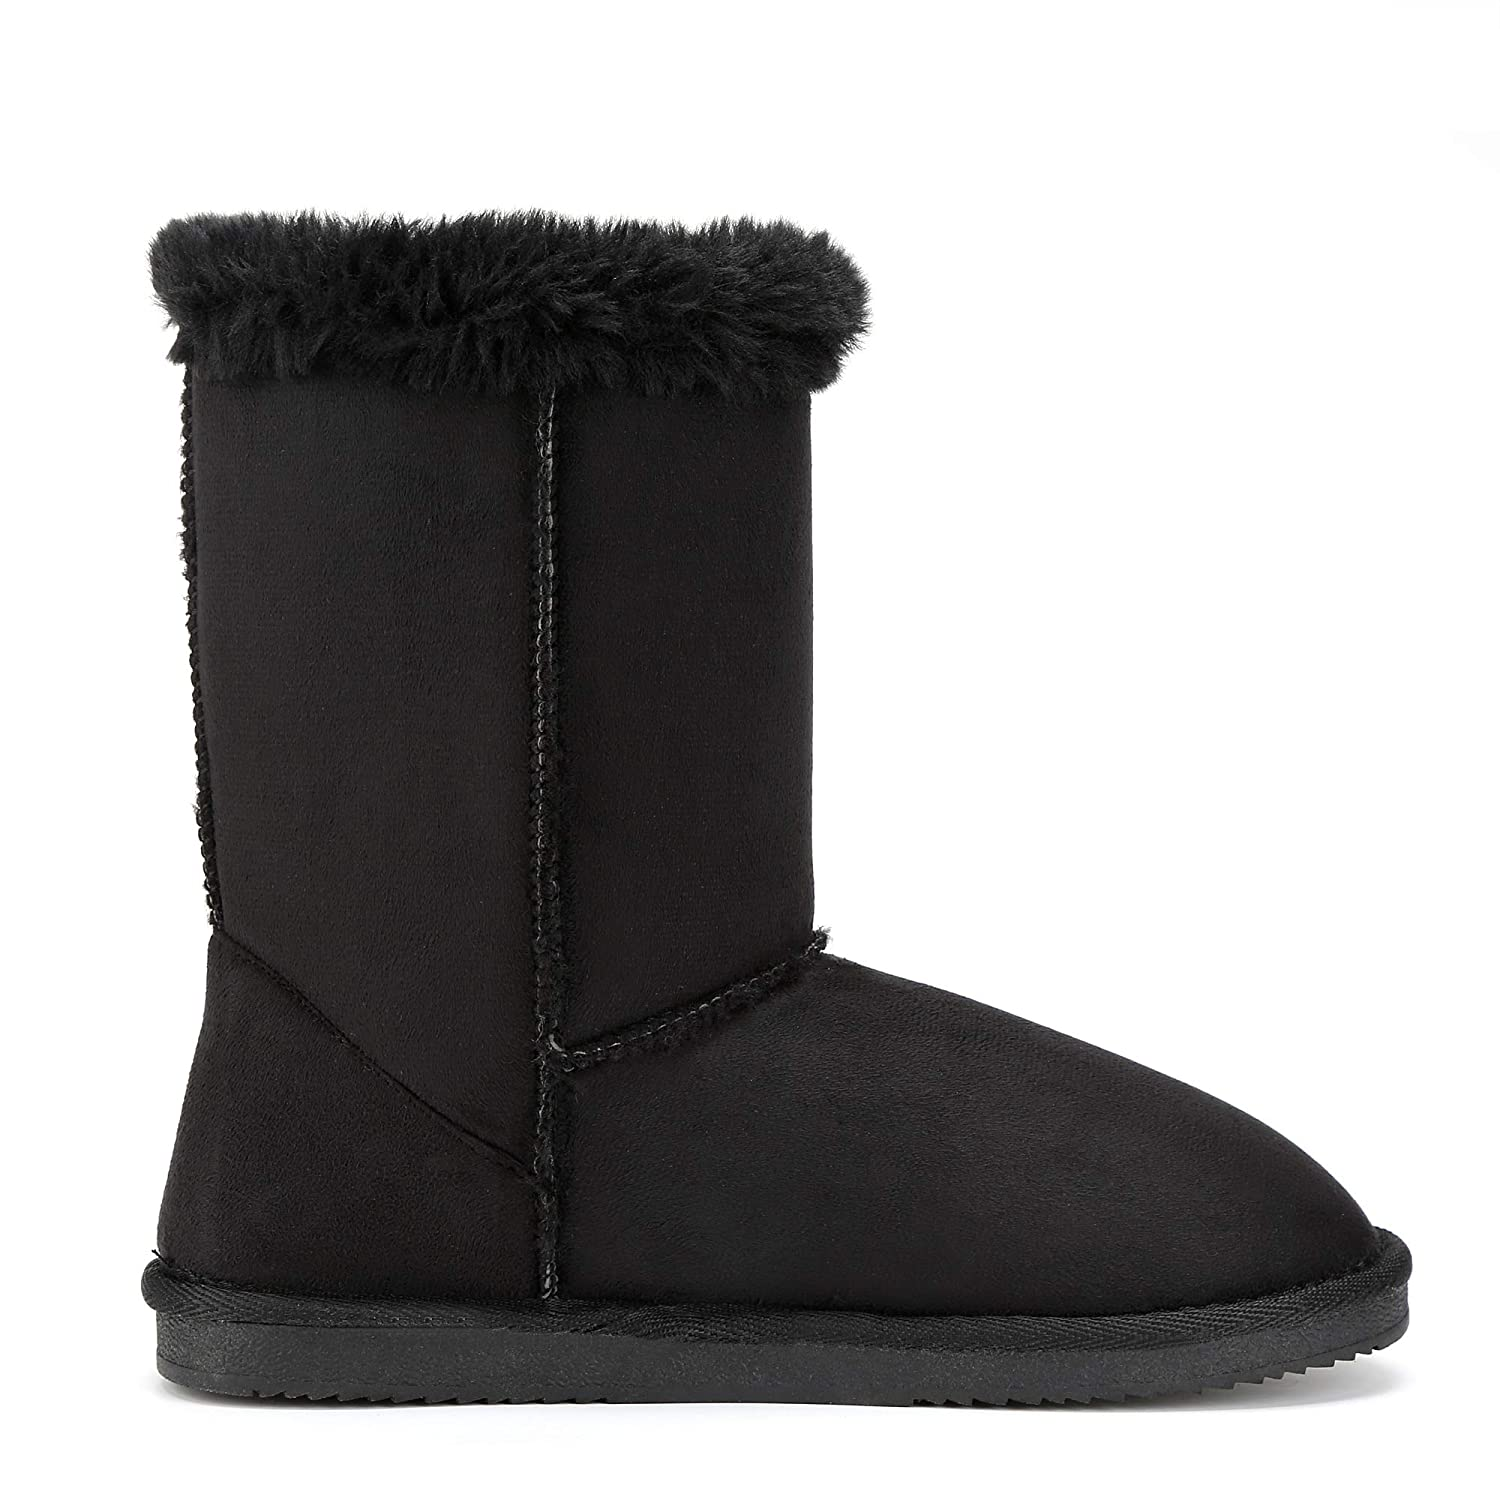 FUNKYMONKEY Womens Winter Classic Suede Imitation Wool Lined Snow Boot